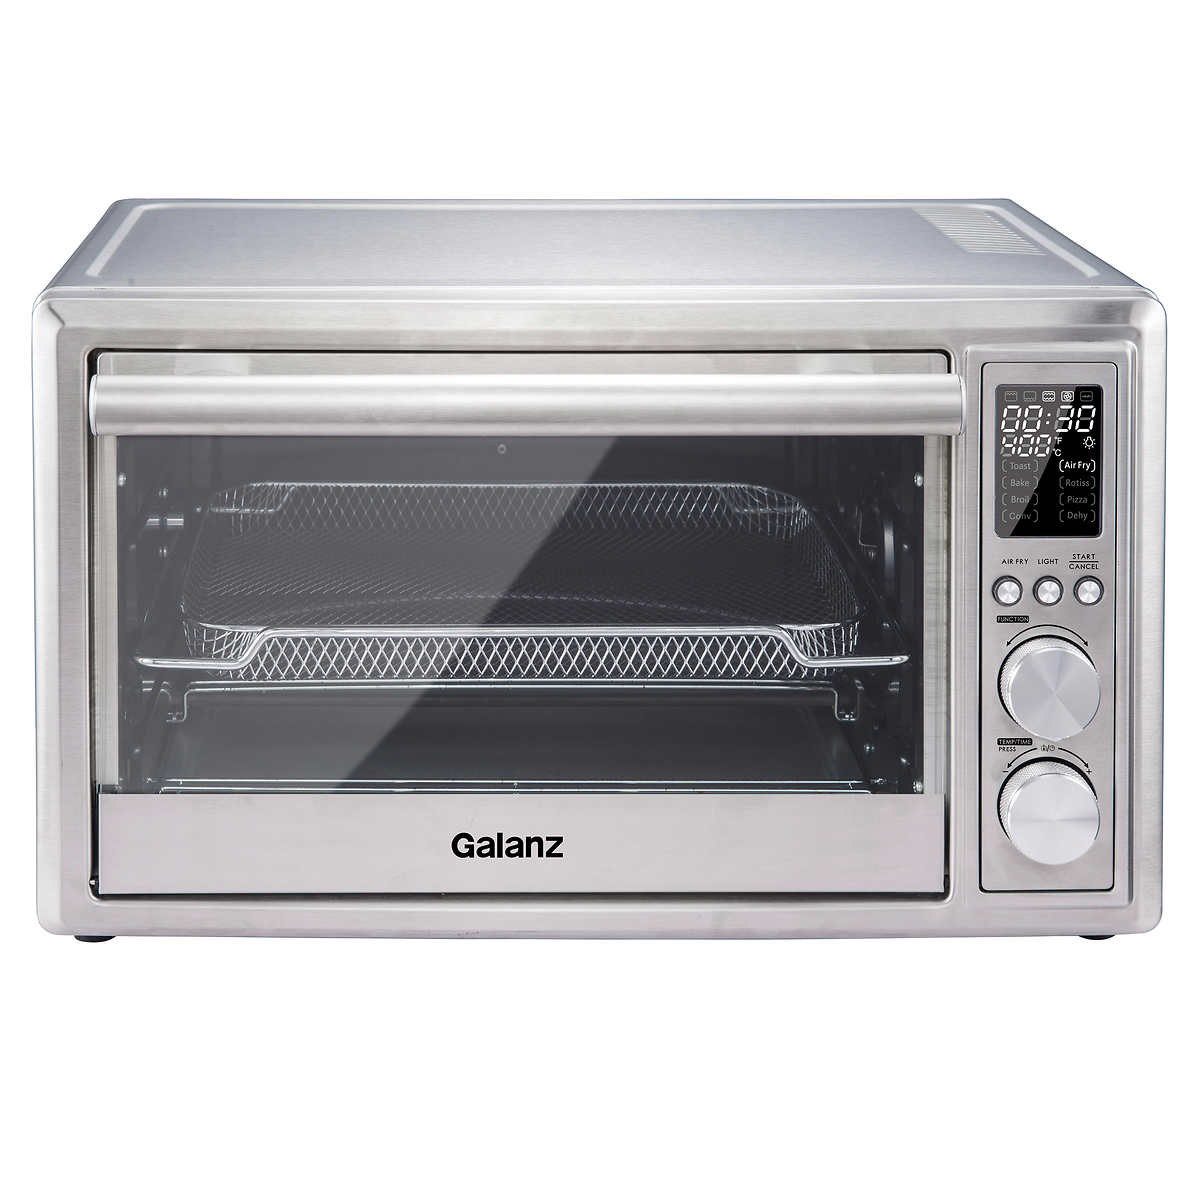 Galanz 6 Slice Toaster Oven With Air Fry